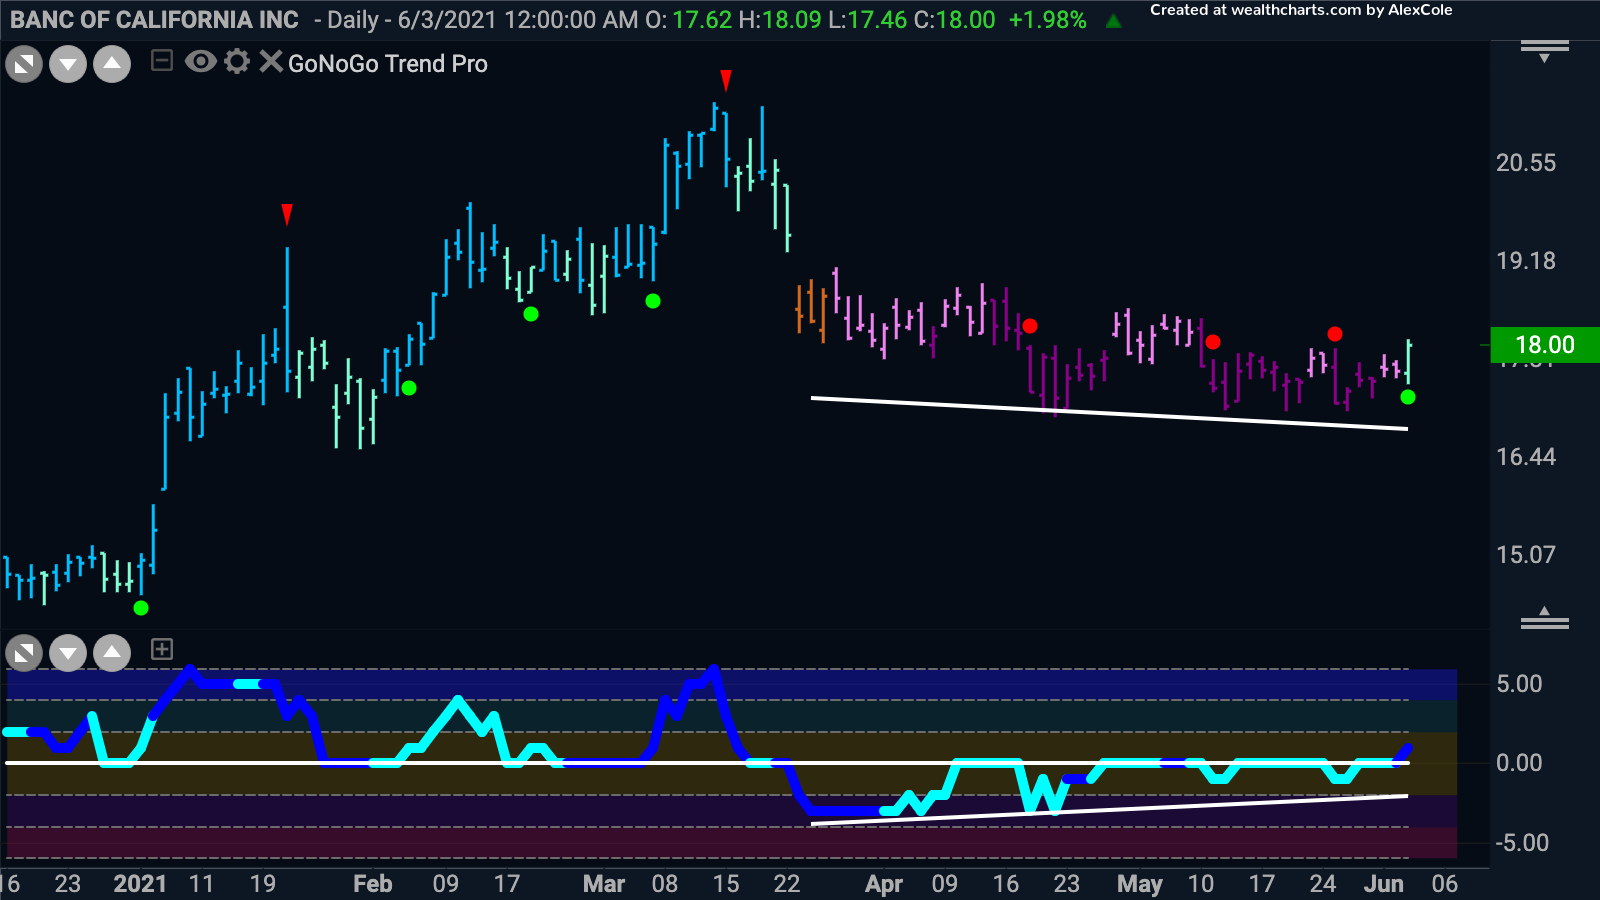 $BANC ready for more gains?